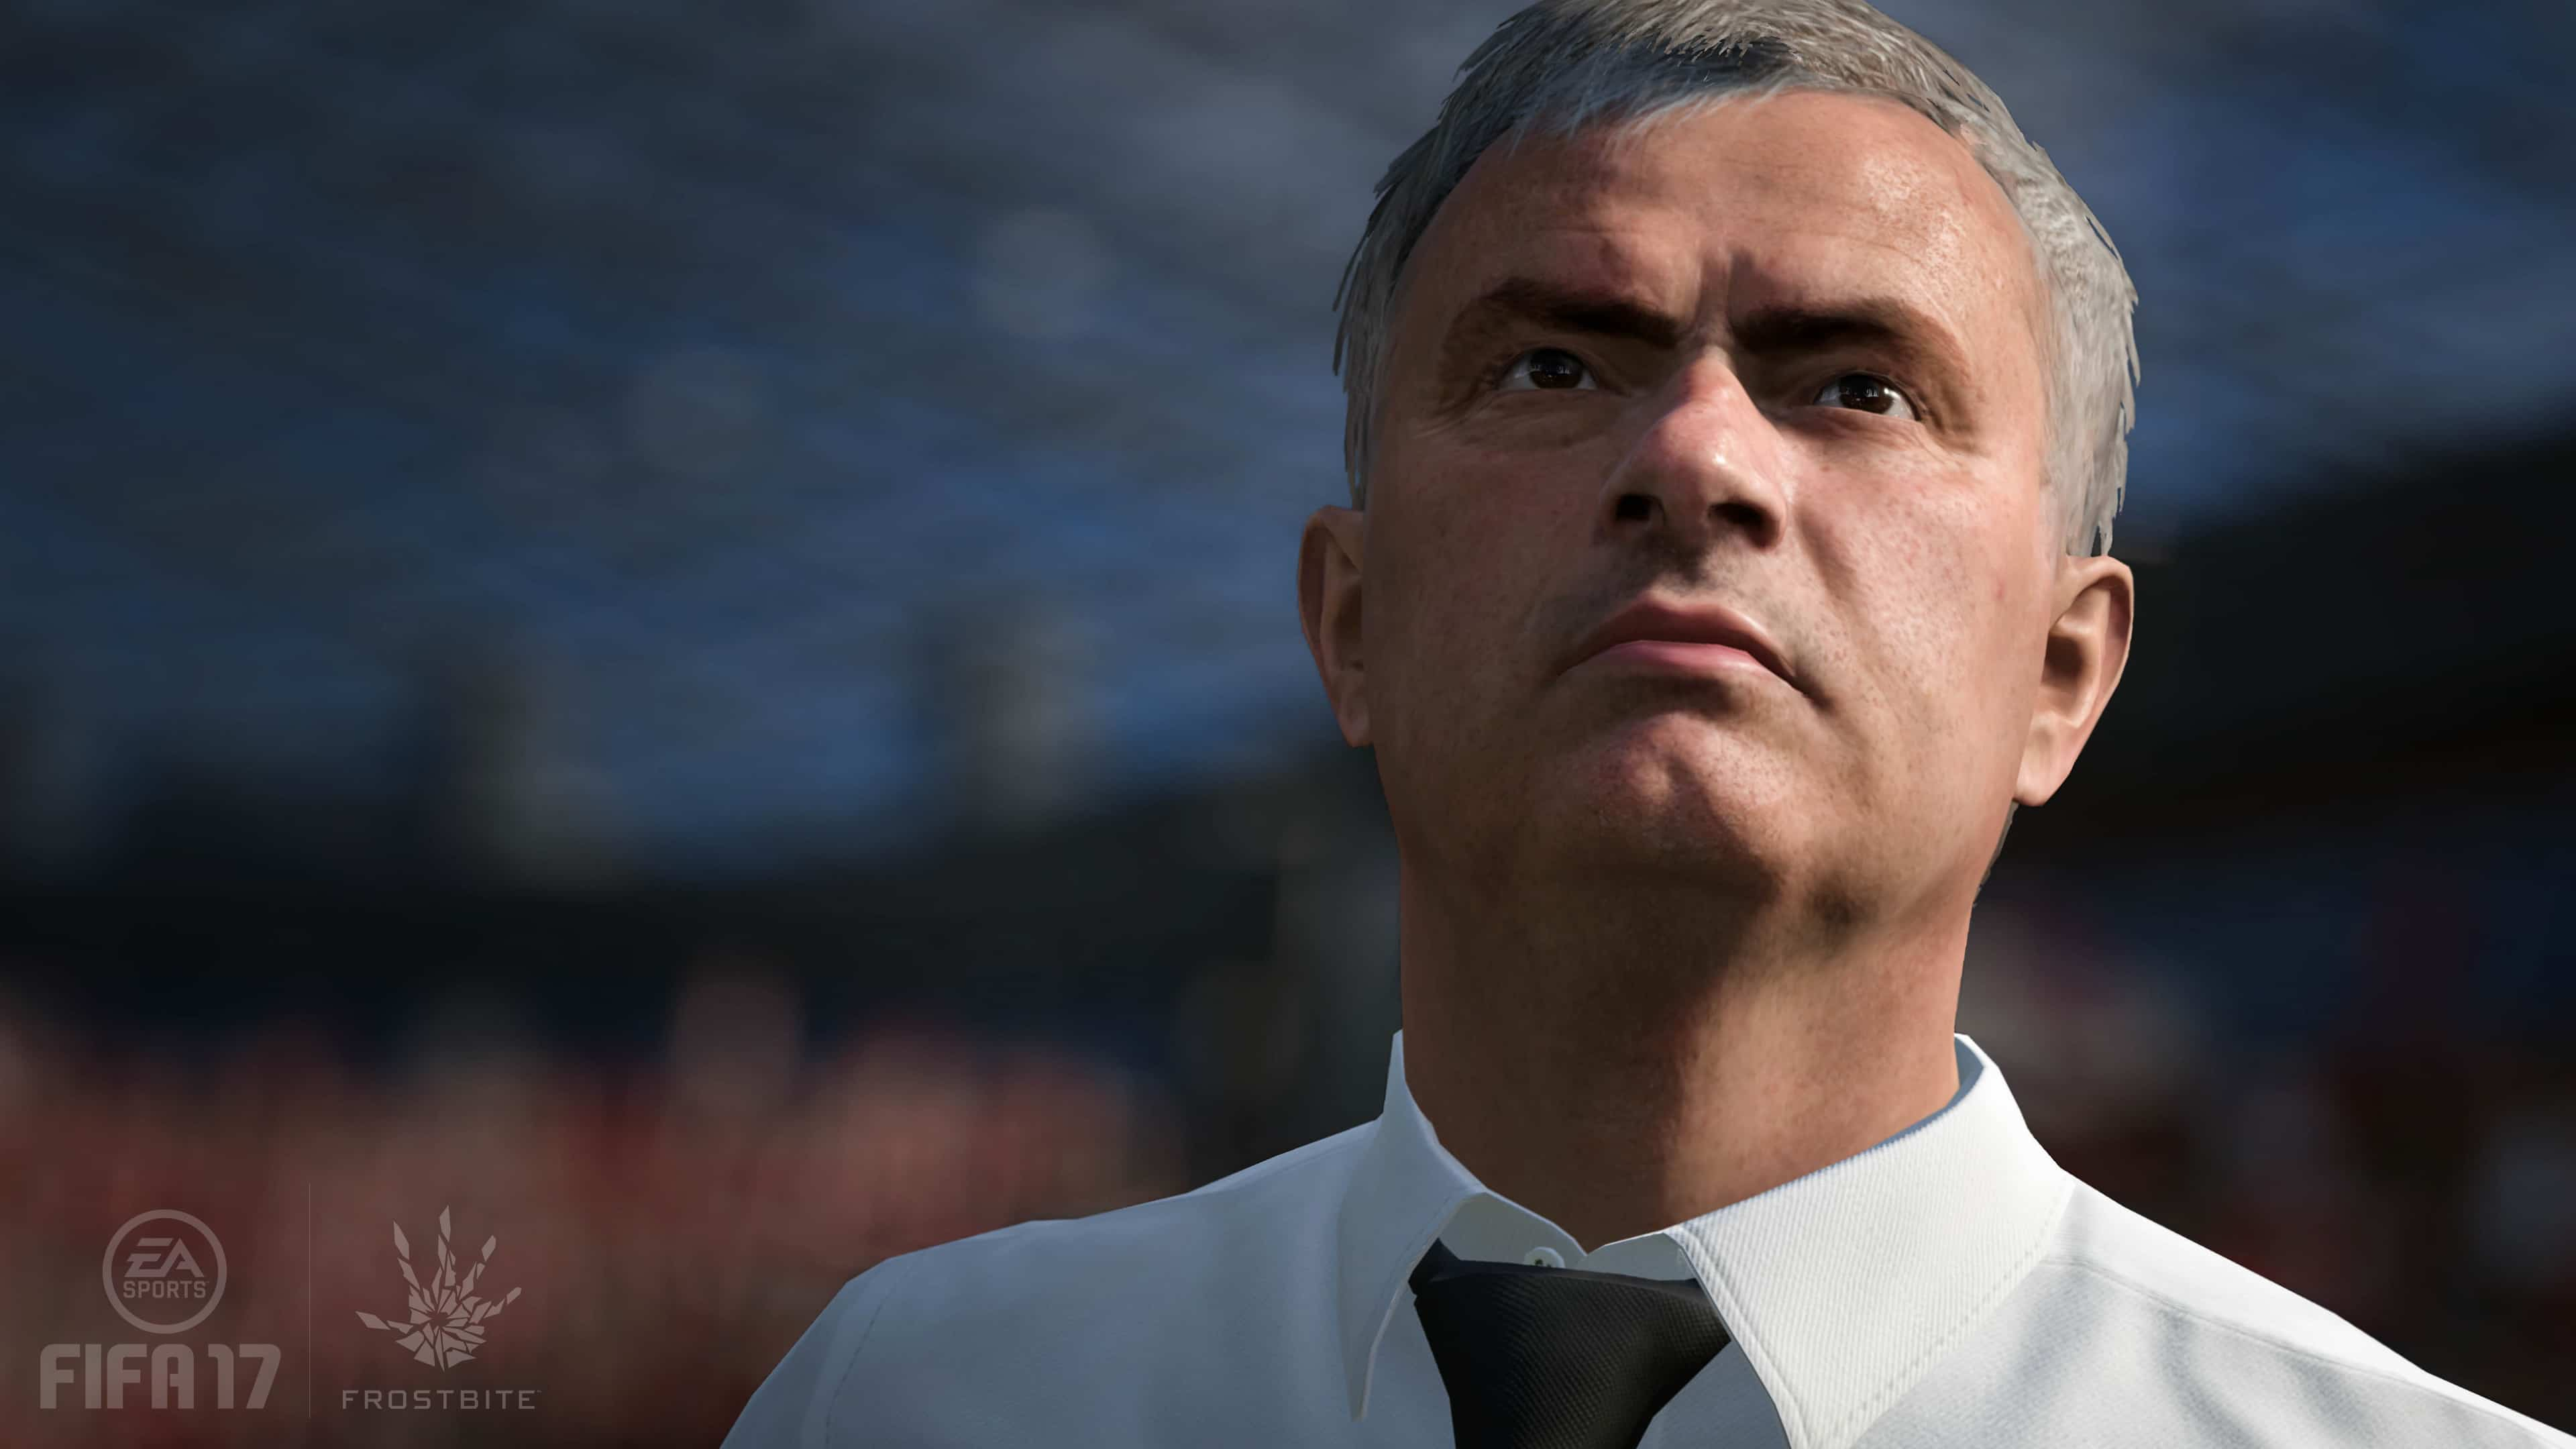 FIFA17_XB1_PS4_EAPLAY_MANAGERS_JOSE_WM_(2)